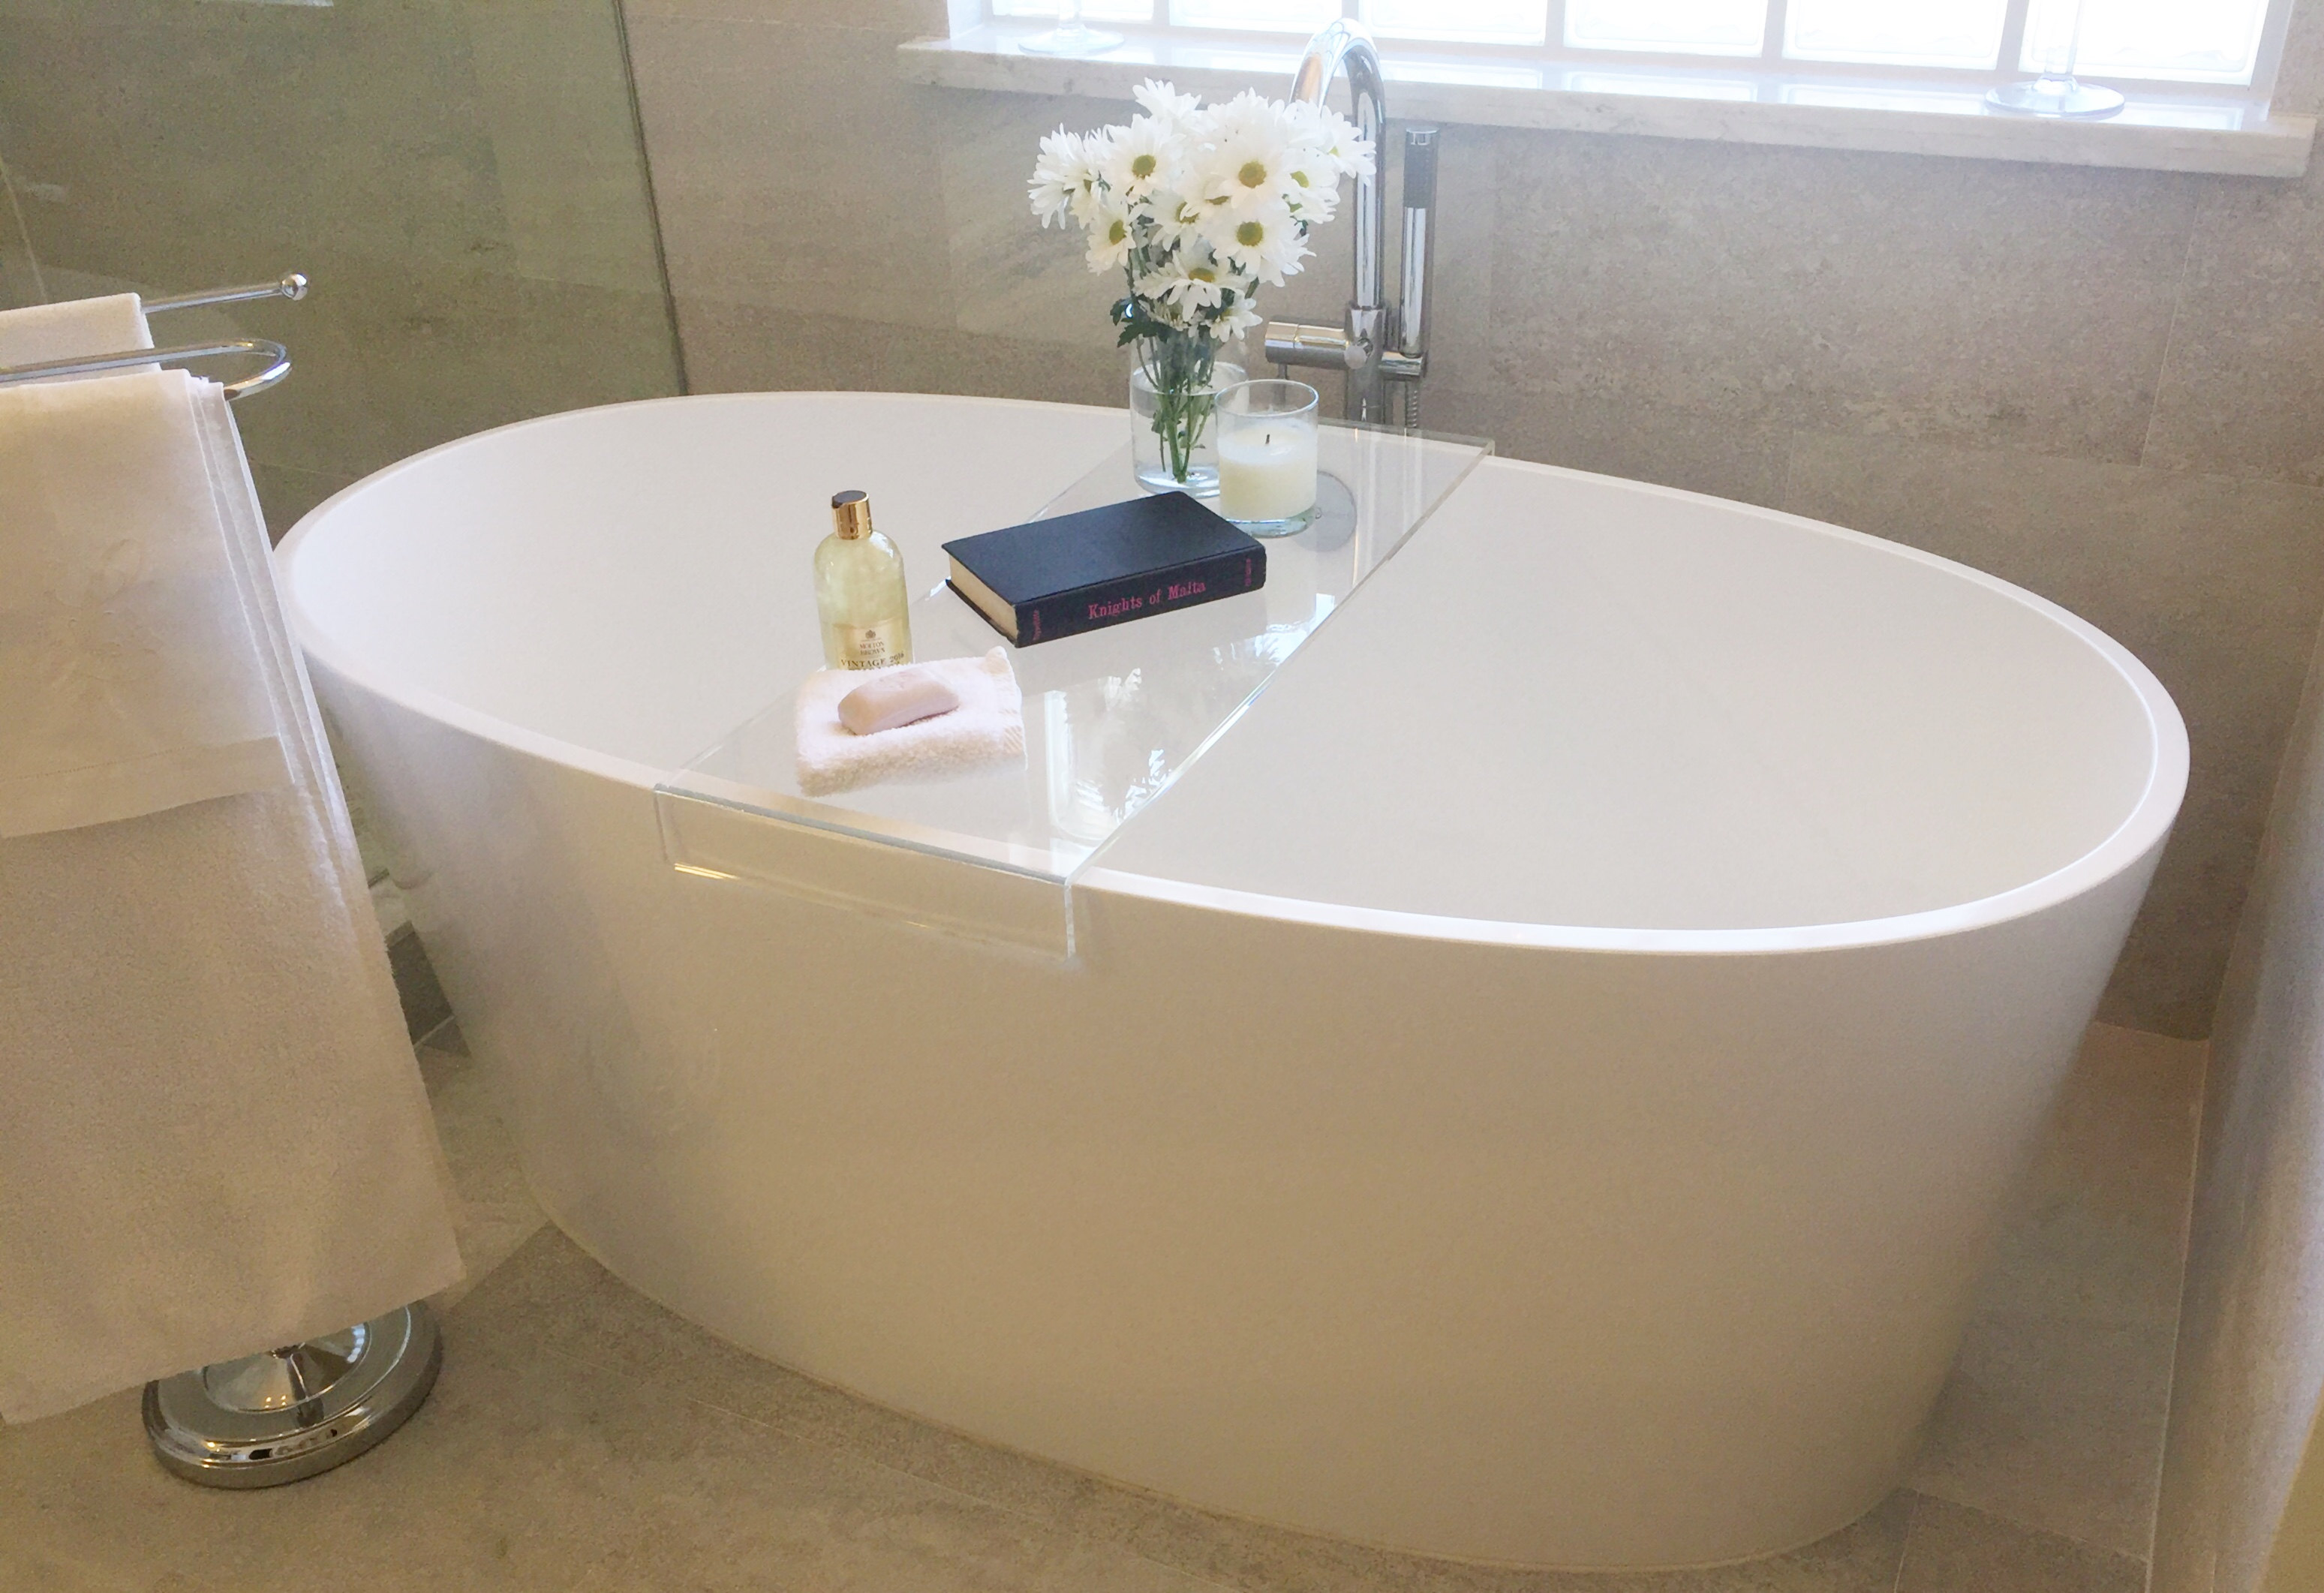 Acrylic Bathtub Caddy United Products Llc